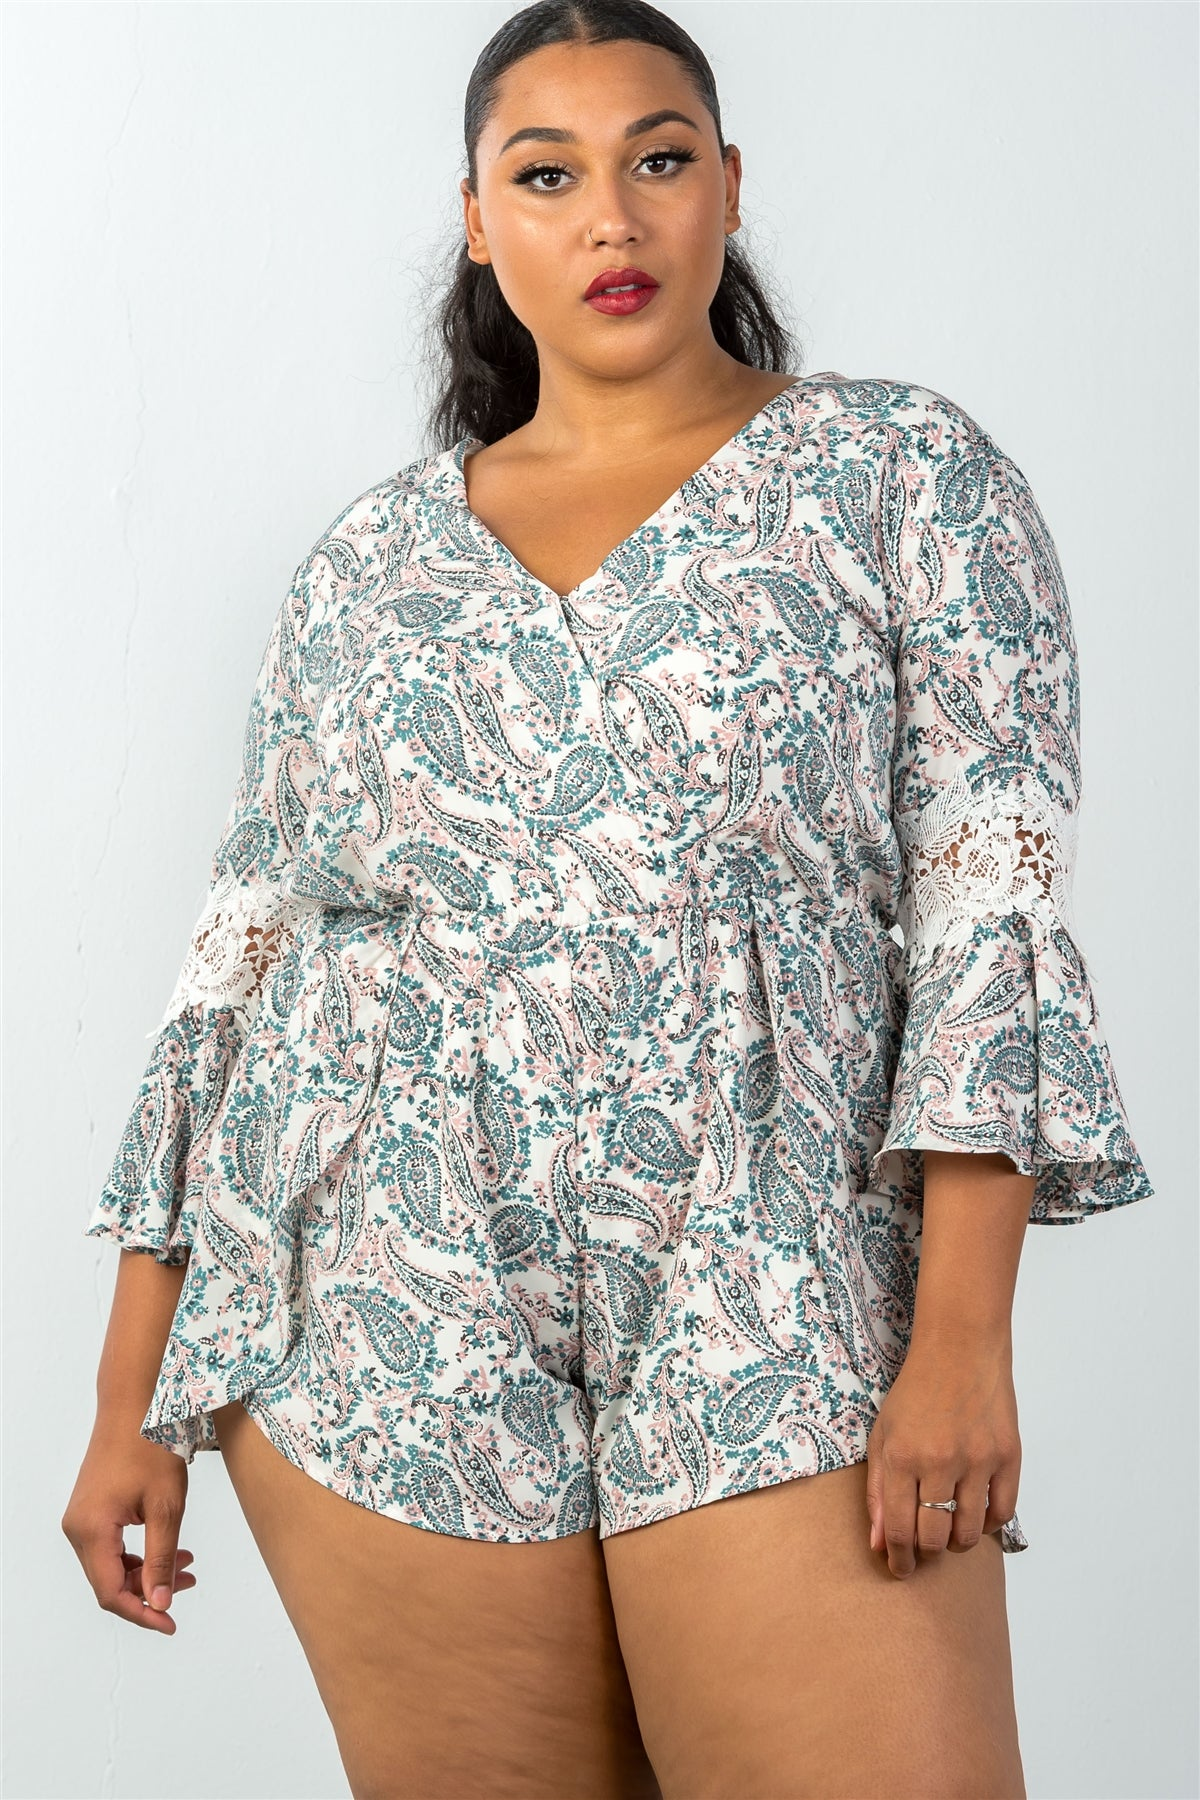 Ladies fashion  3/4 bell sleeves floral crochet sleeves surplice romper - Creole Couture Boutique